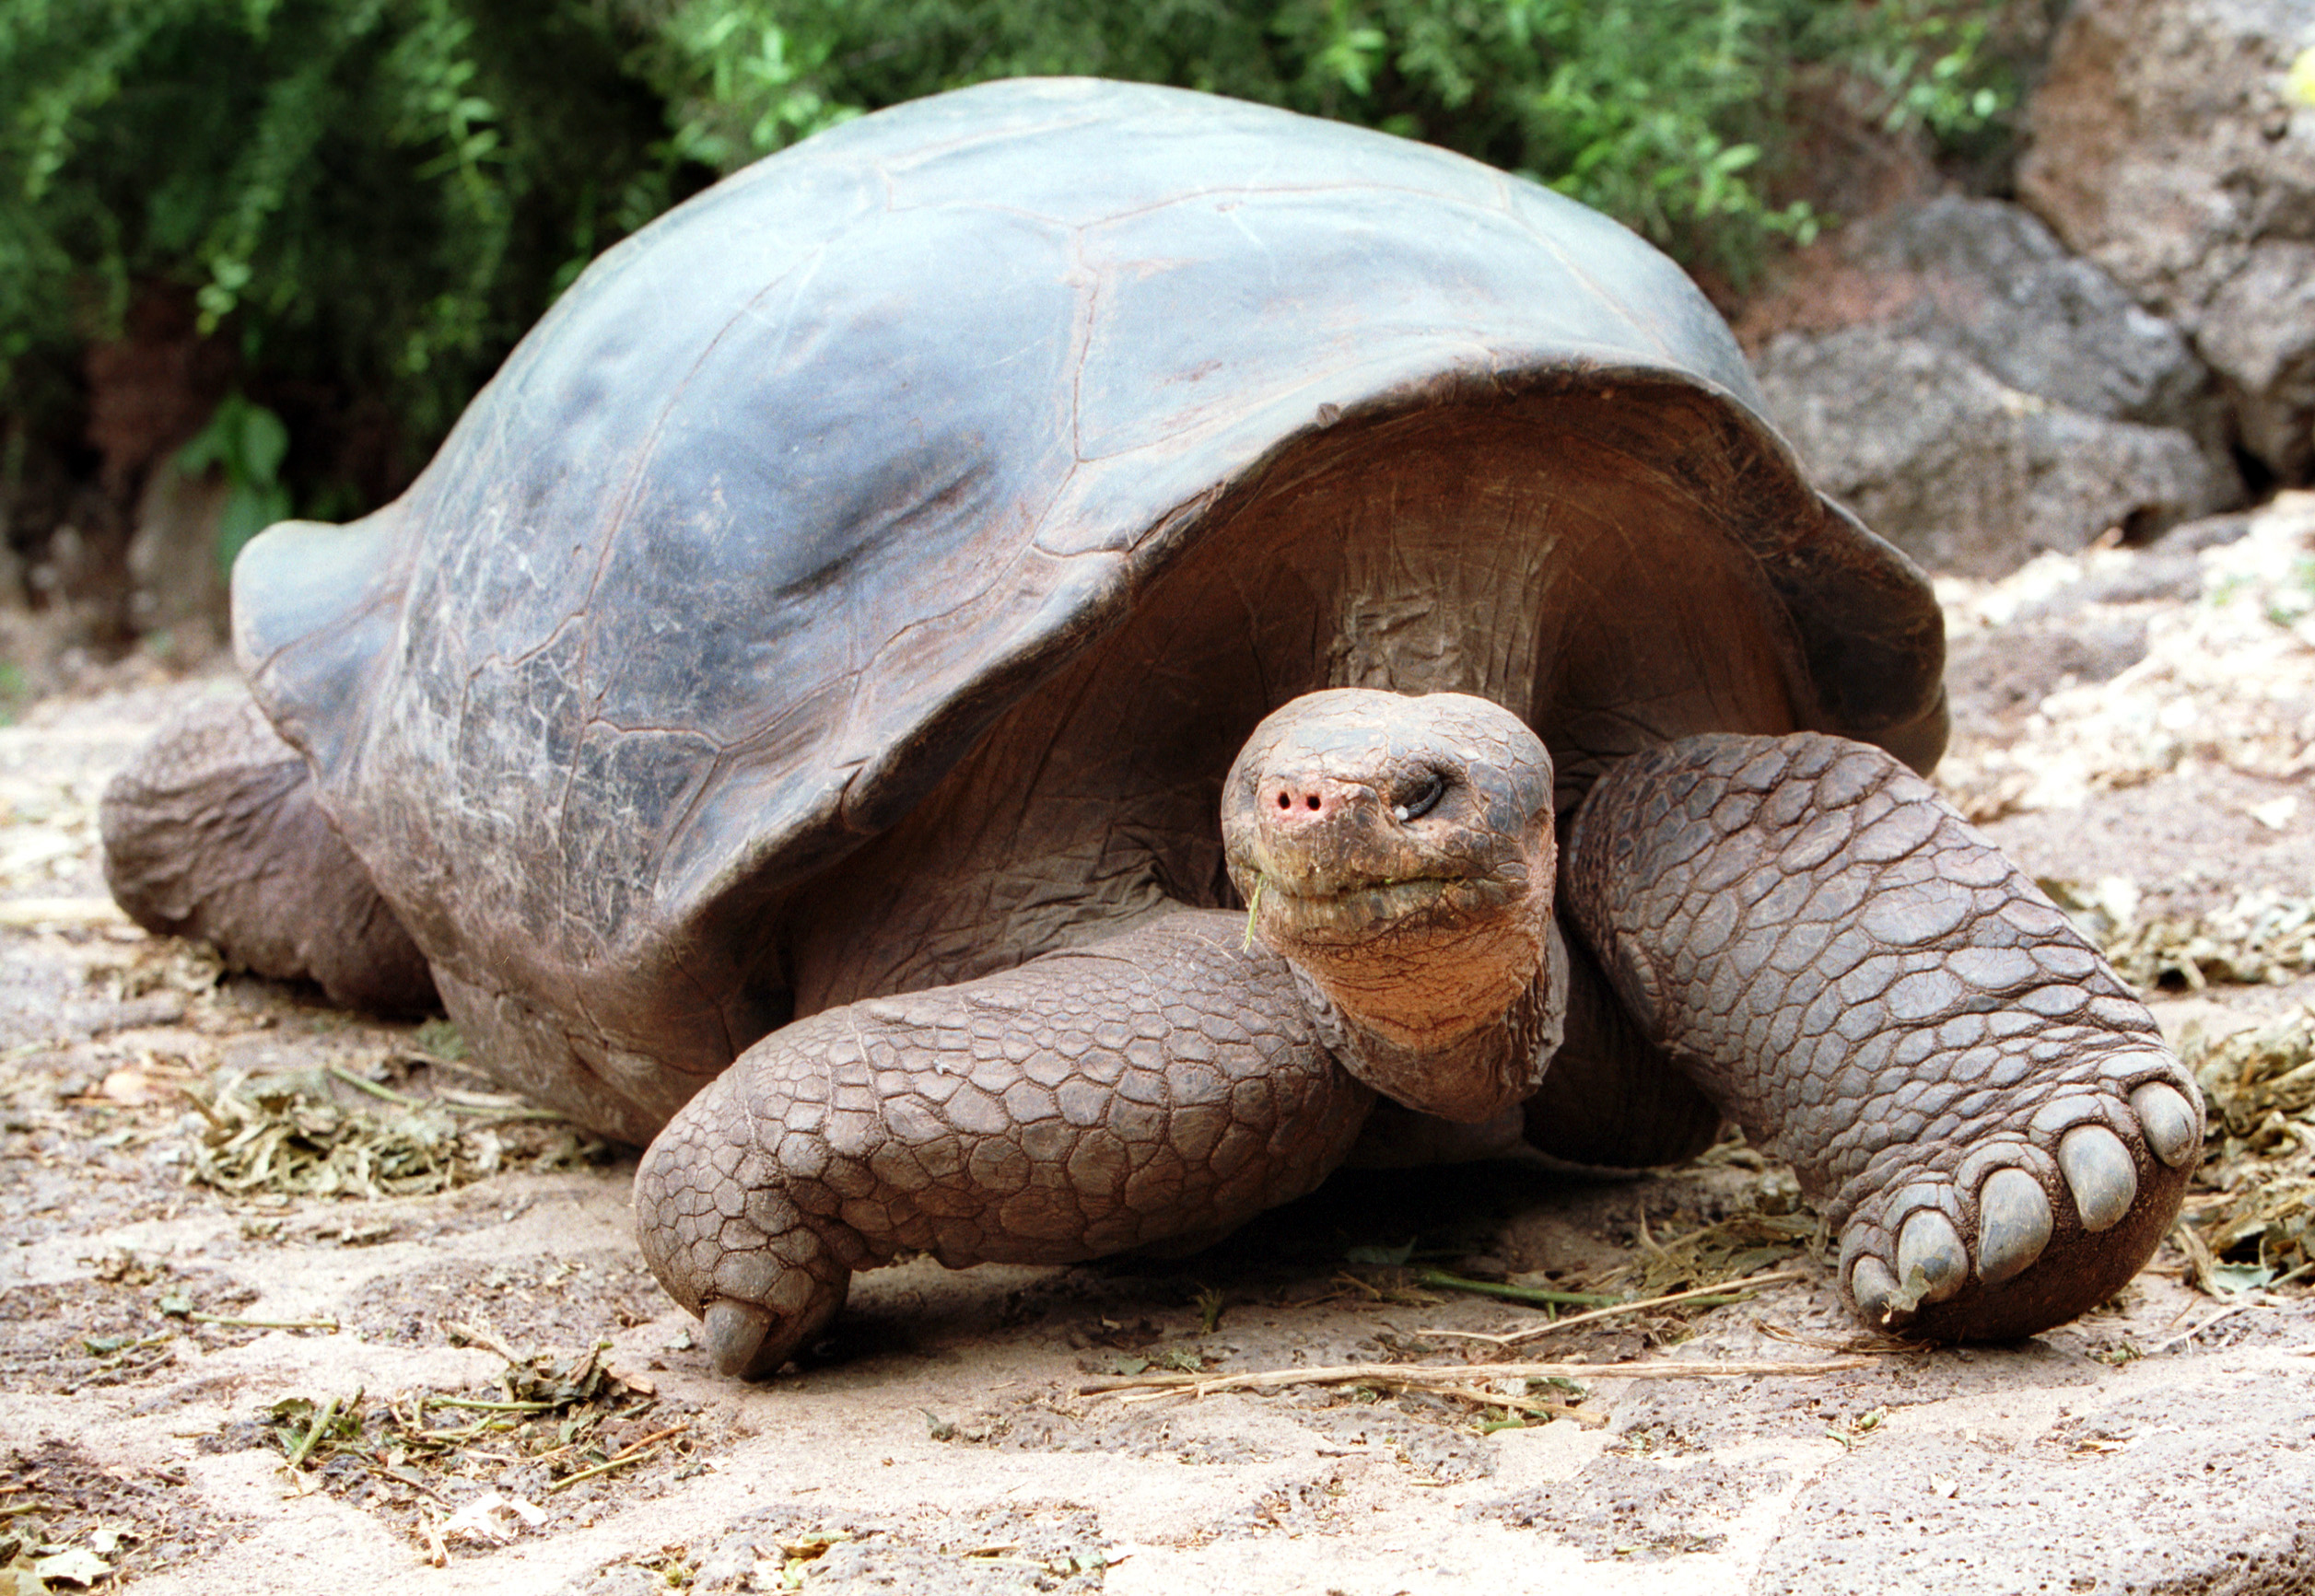 An approximately 100 year old Galapagos giant tortoise, Charles-Darwin research station on the island of Santa Cruz, Galapagos Islands, Ecuador